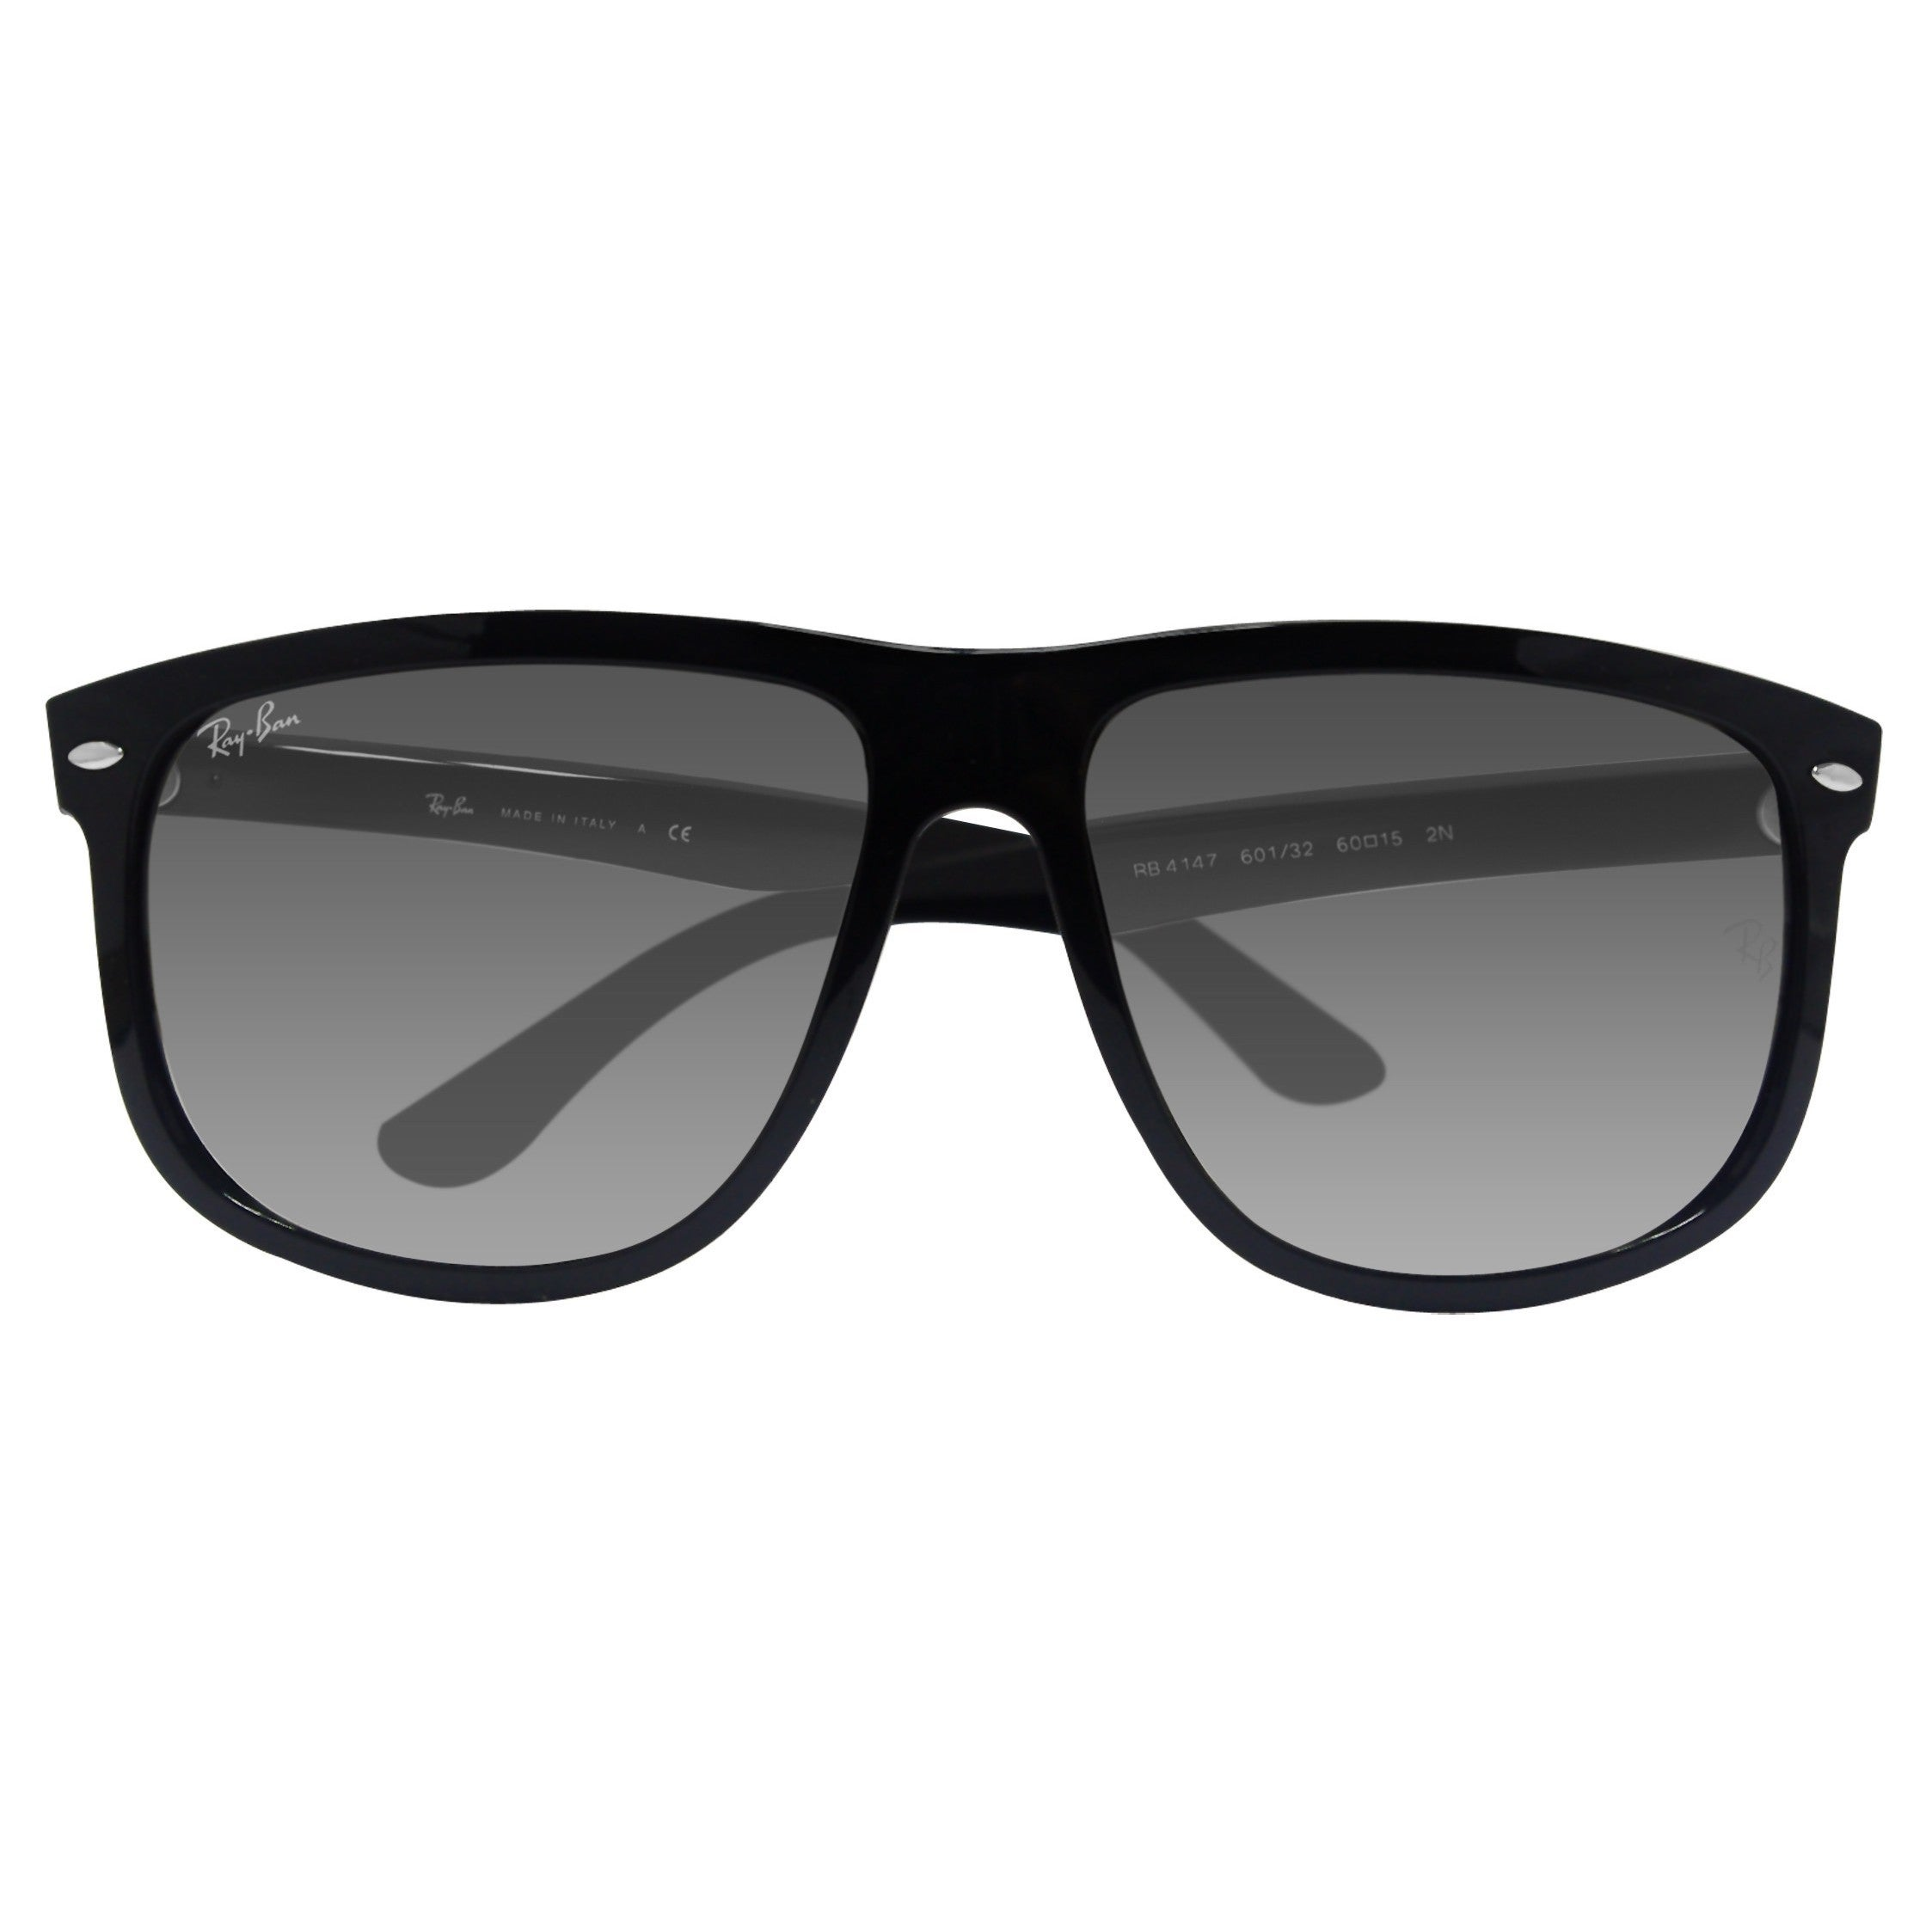 ae6eb7a2ec1 Shop Ray-Ban RB4147 601 32 Black Frame Light Grey Gradient 60mm Lens  Sunglasses - Free Shipping Today - Overstock - 14325964